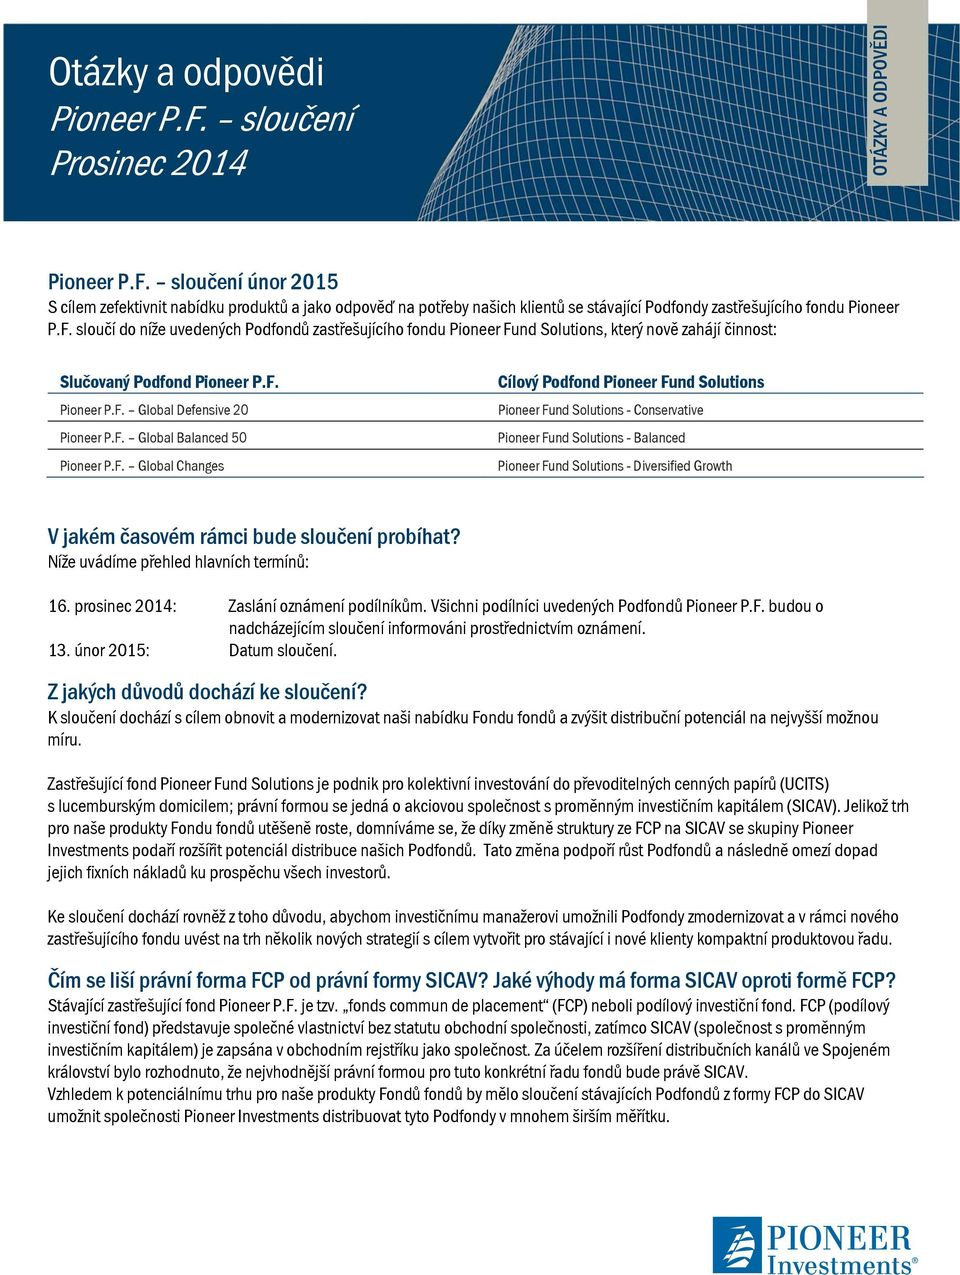 F. Global Changes Cílový Podfond Pioneer Fund Solutions Pioneer Fund Solutions - Conservative Pioneer Fund Solutions - Balanced Pioneer Fund Solutions - Diversified Growth V jakém časovém rámci bude